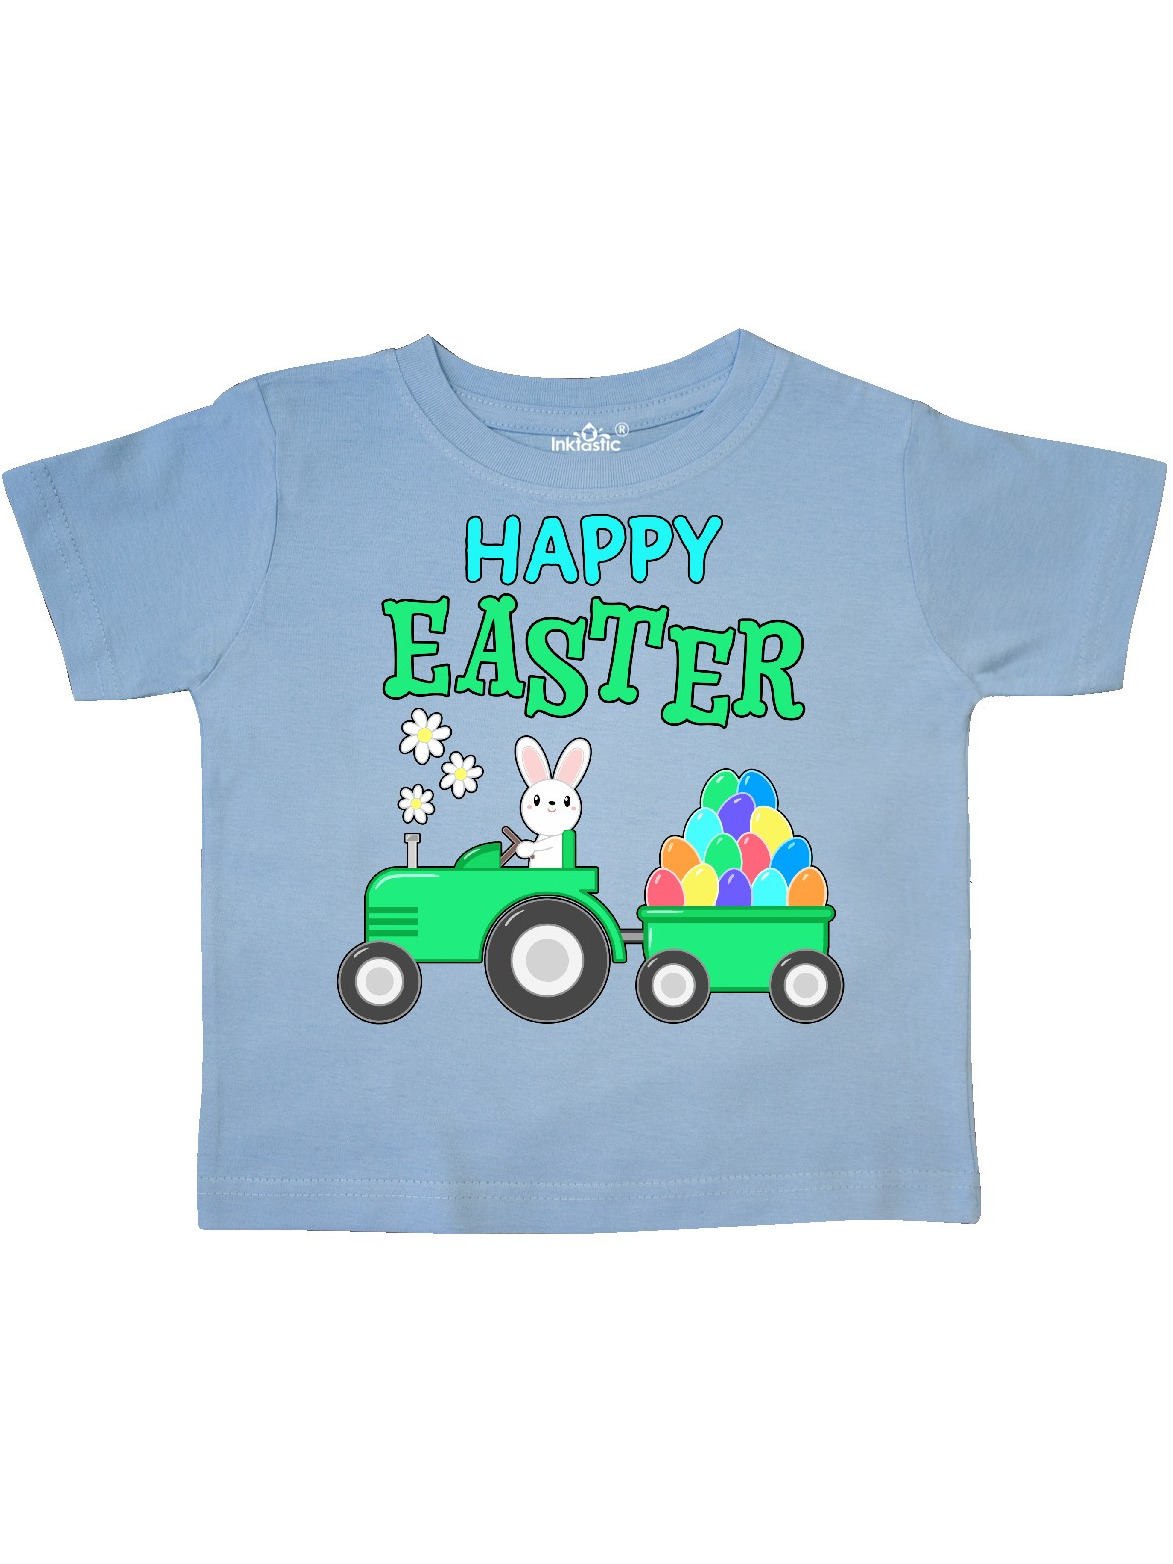 inktastic Happy Easter Grammas Little Chick Toddler Long Sleeve T-Shirt